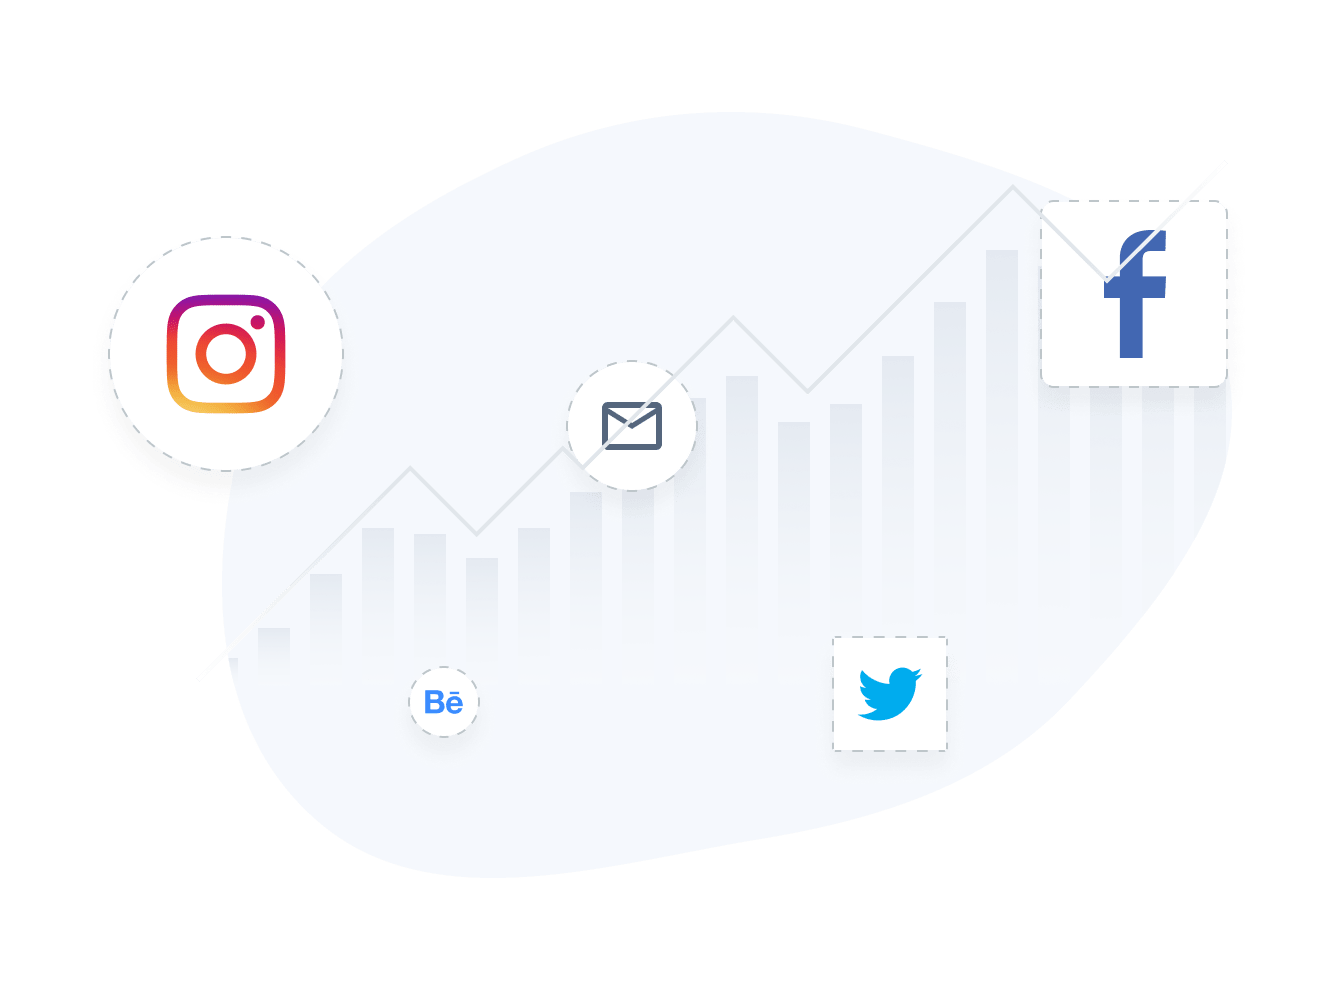 Social media growth chart with Social Media Icons by POWR.